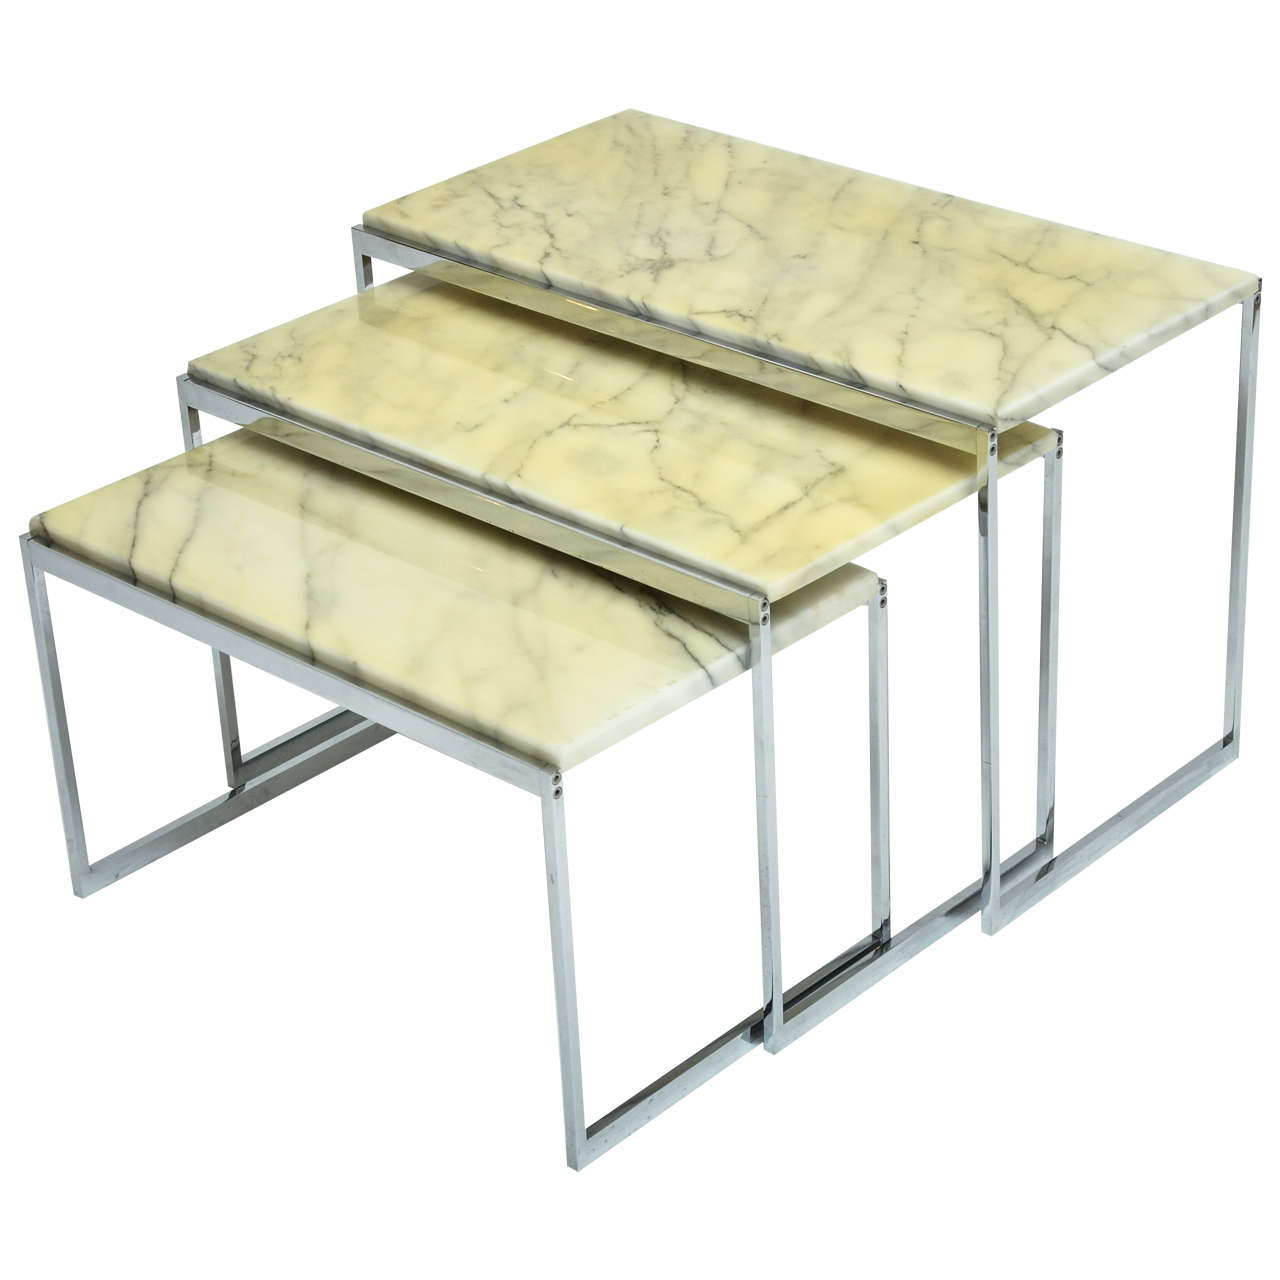 Zuo Modern Civic Center Piece Inch Square Nesting Tables Golime.co. Full resolution  photo, nominally Width 1280 Height 1280 pixels, photo with #594F29.